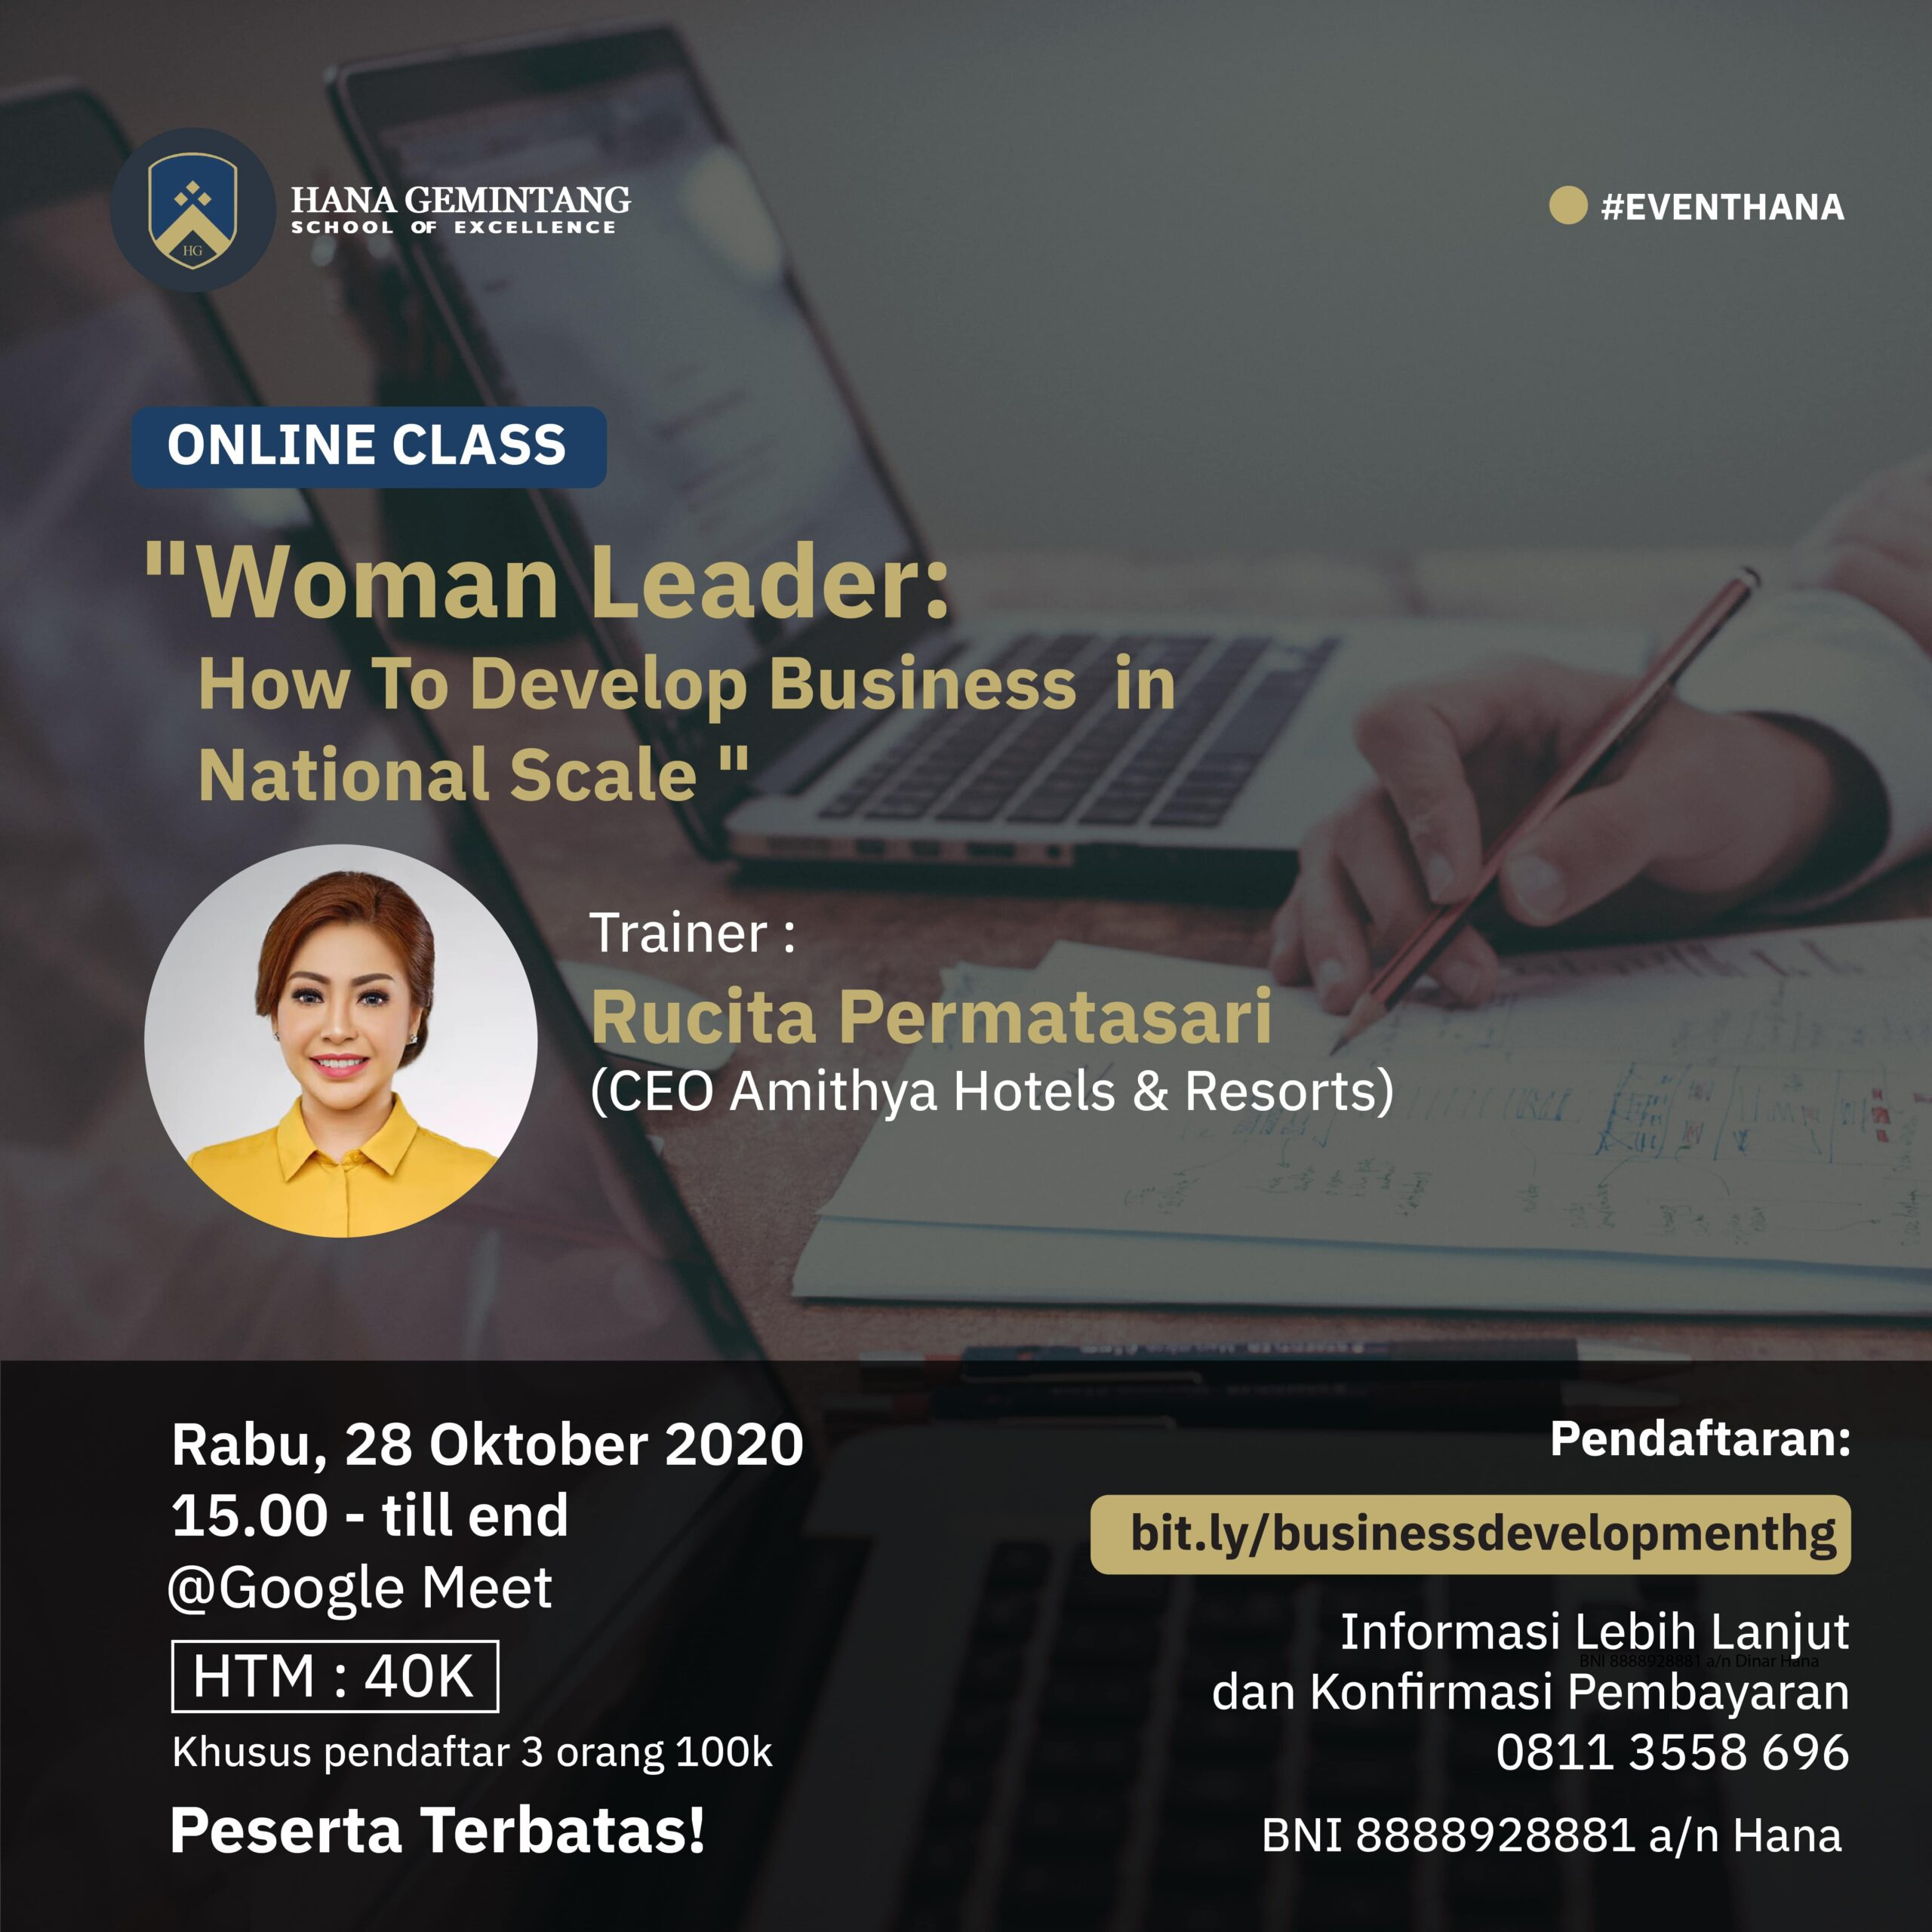 Hana Gemintang - Woman Leader : Develop Business in National Scale